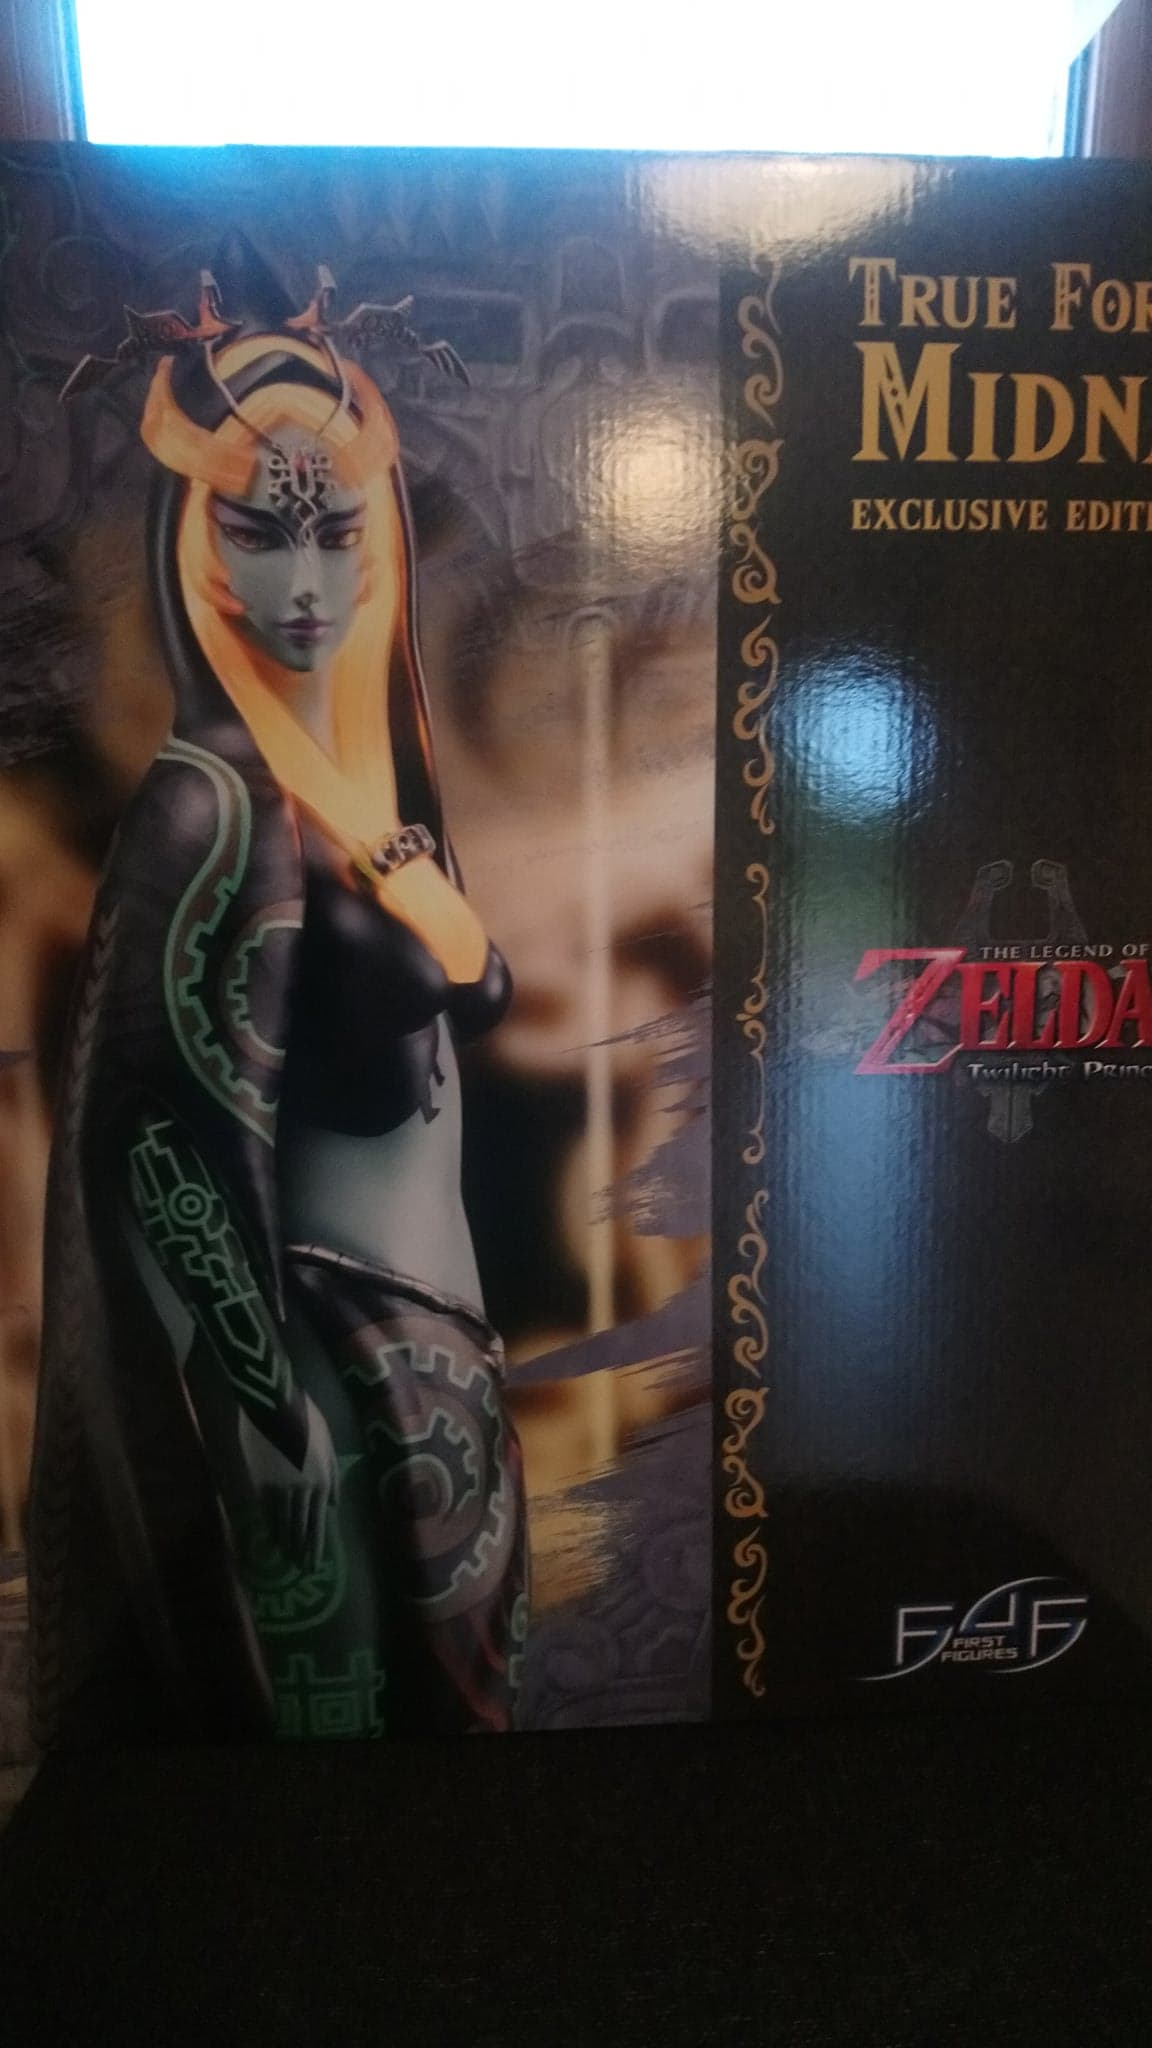 Unboxing de la figurine MIDNA édition exclusive – First 4 Figures